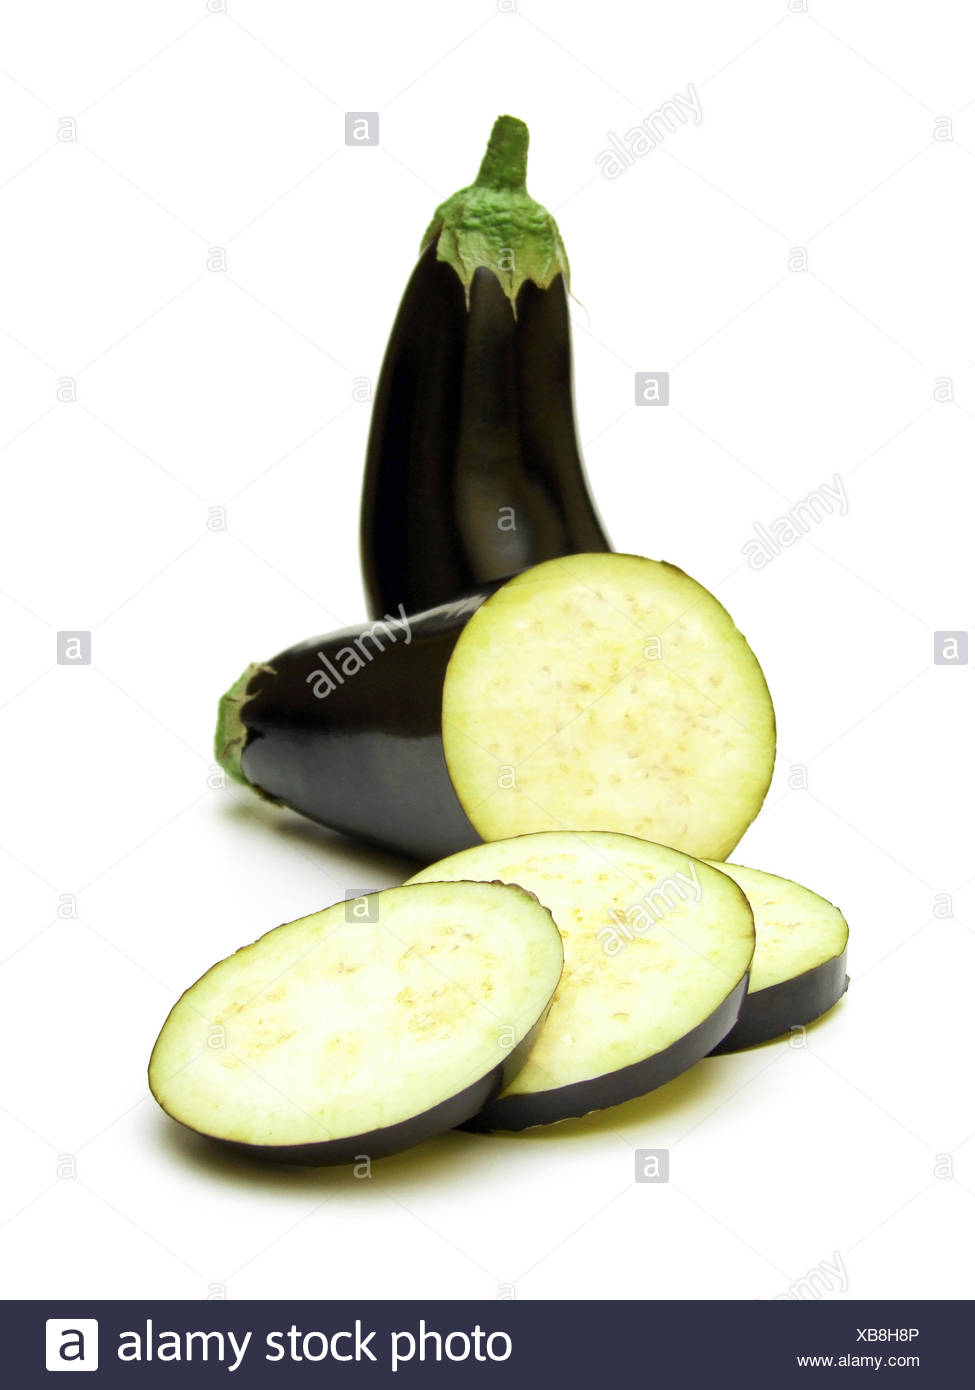 food, aliment, boil, cooks, boiling, cooking, vegetable, ingredients, Stock Photo